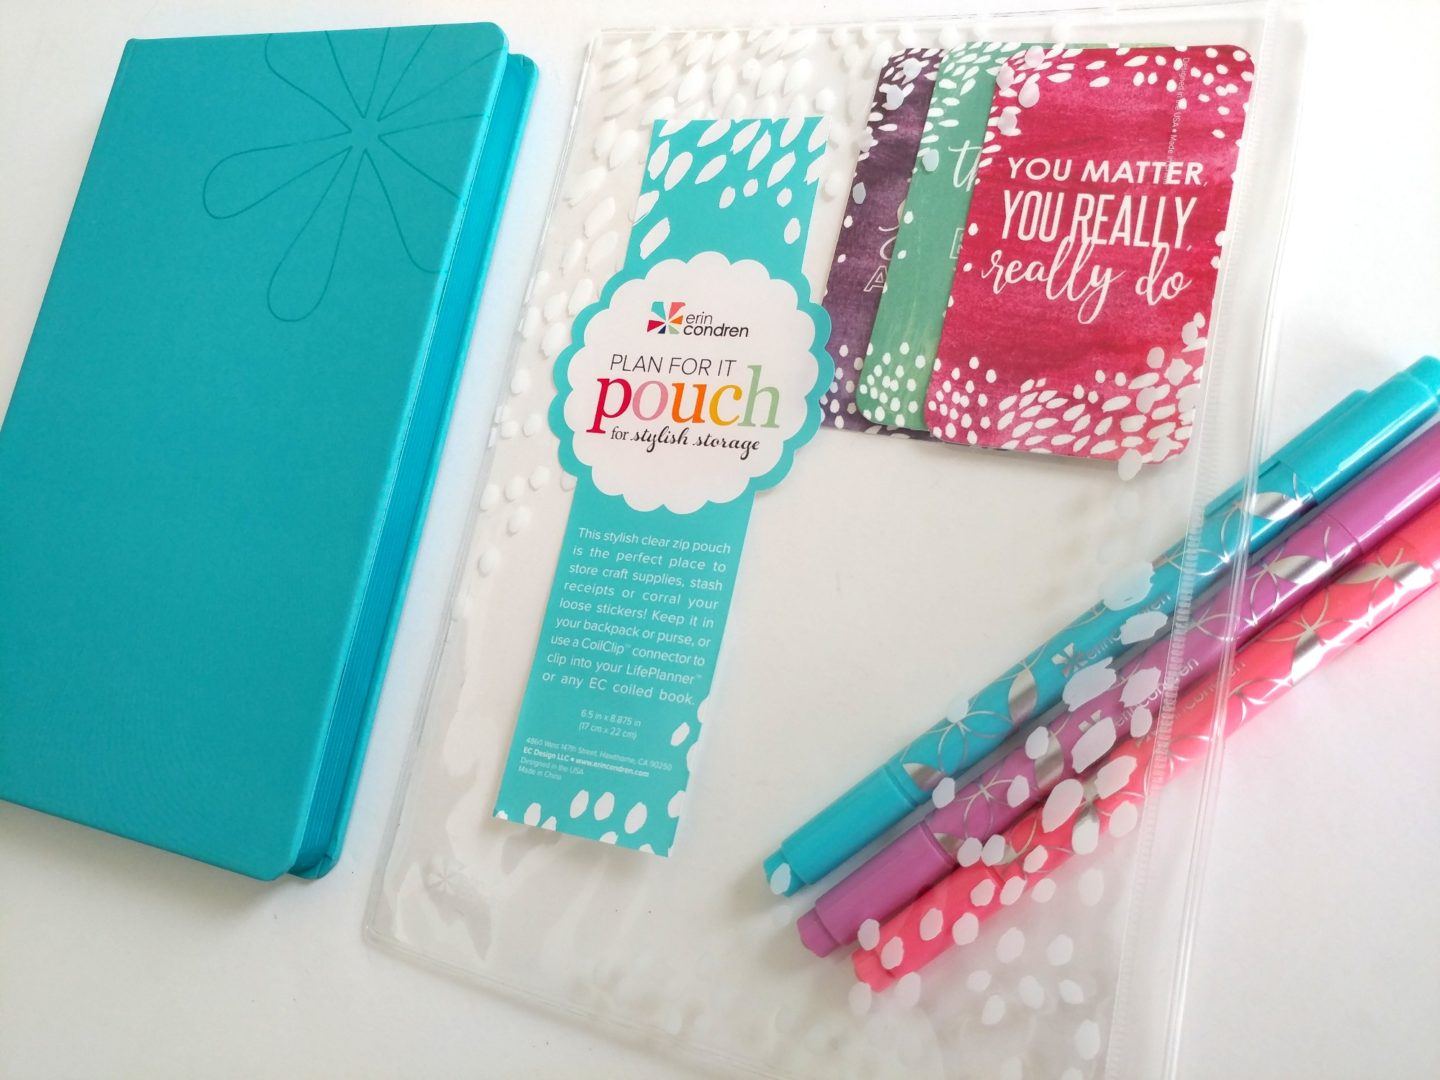 erin-condren-plan-for-it-pouch-and-markers